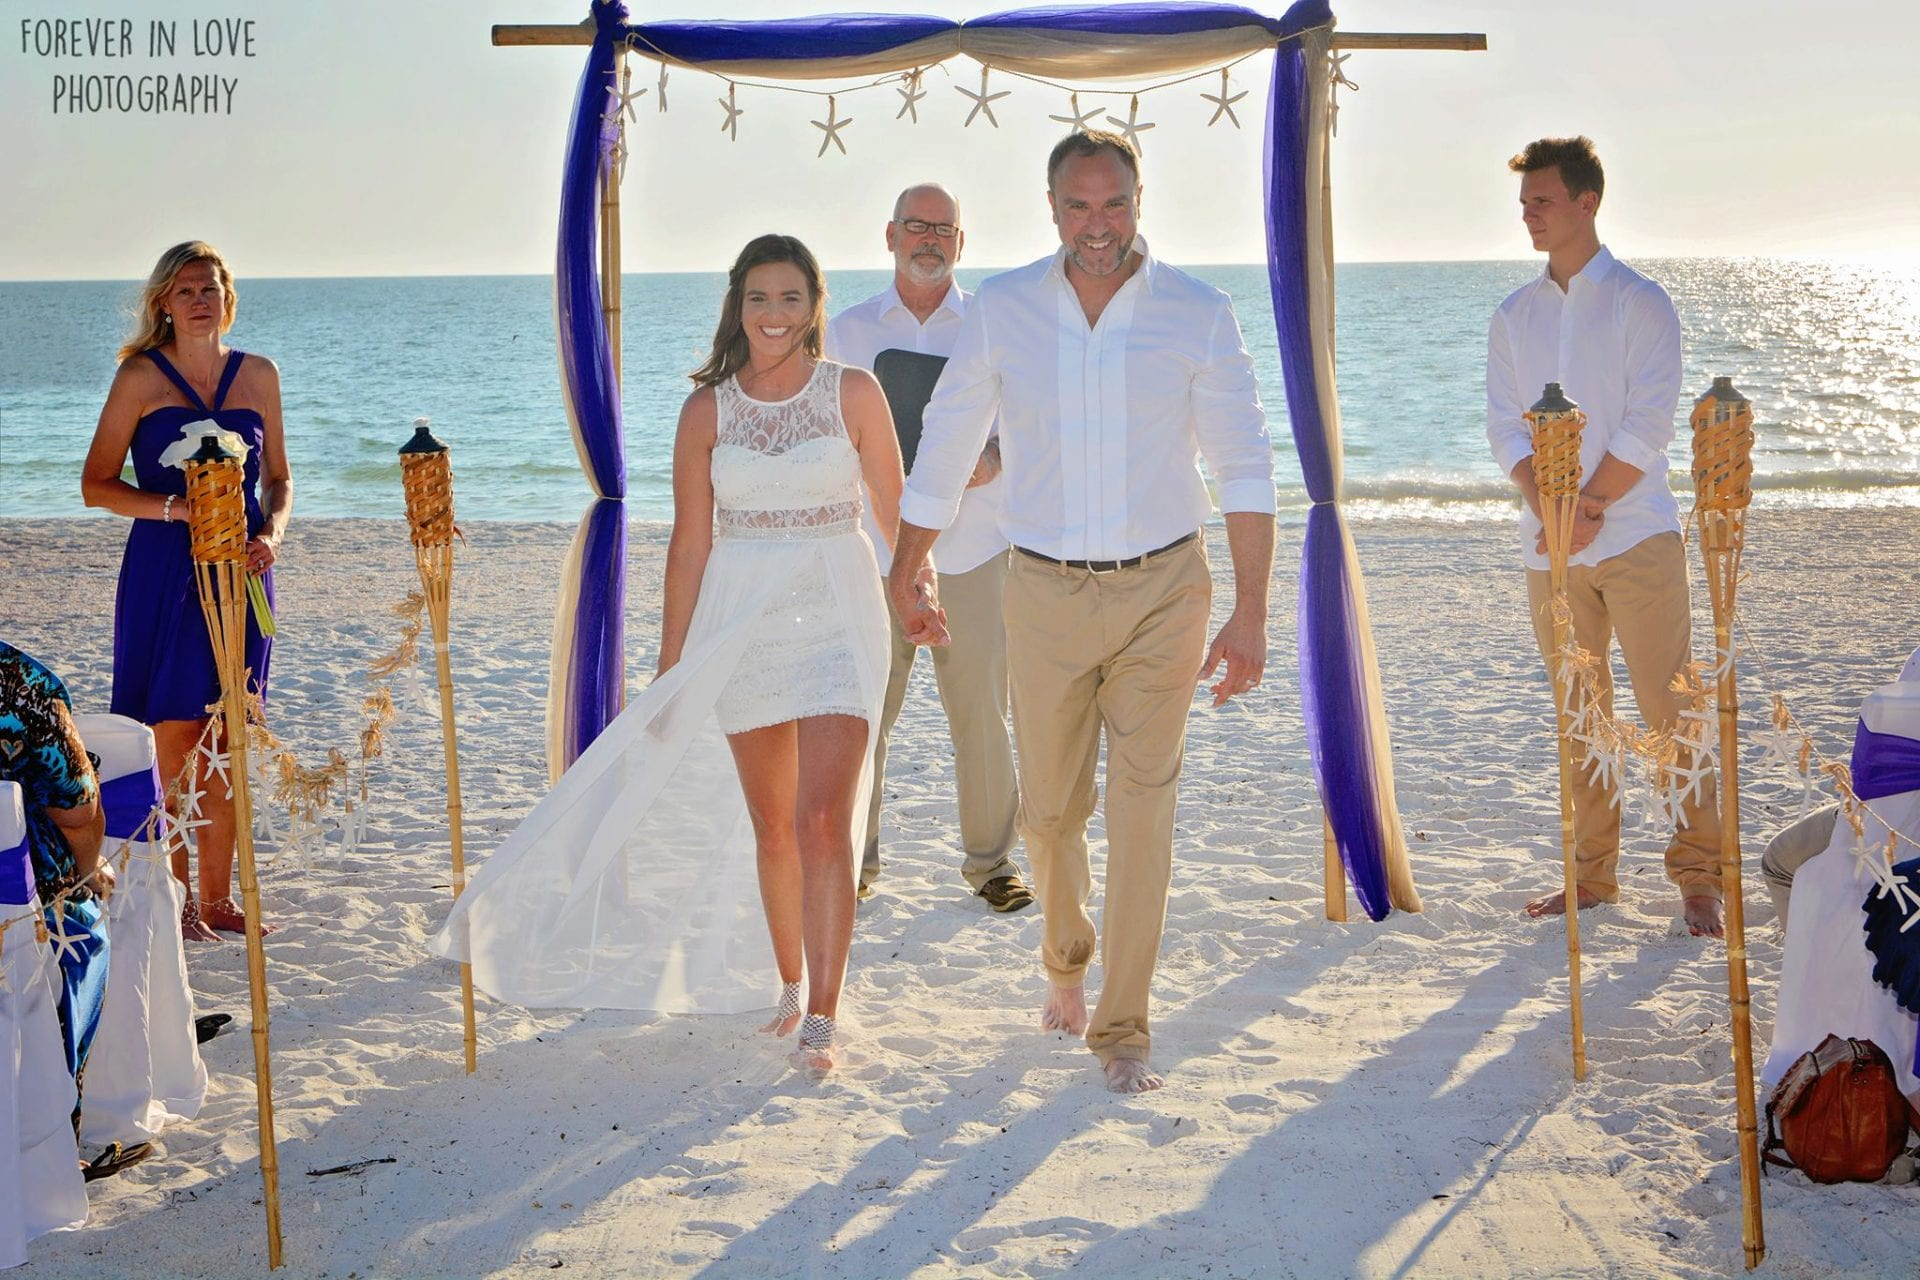 Couple holding hands at beach wedding ceremony